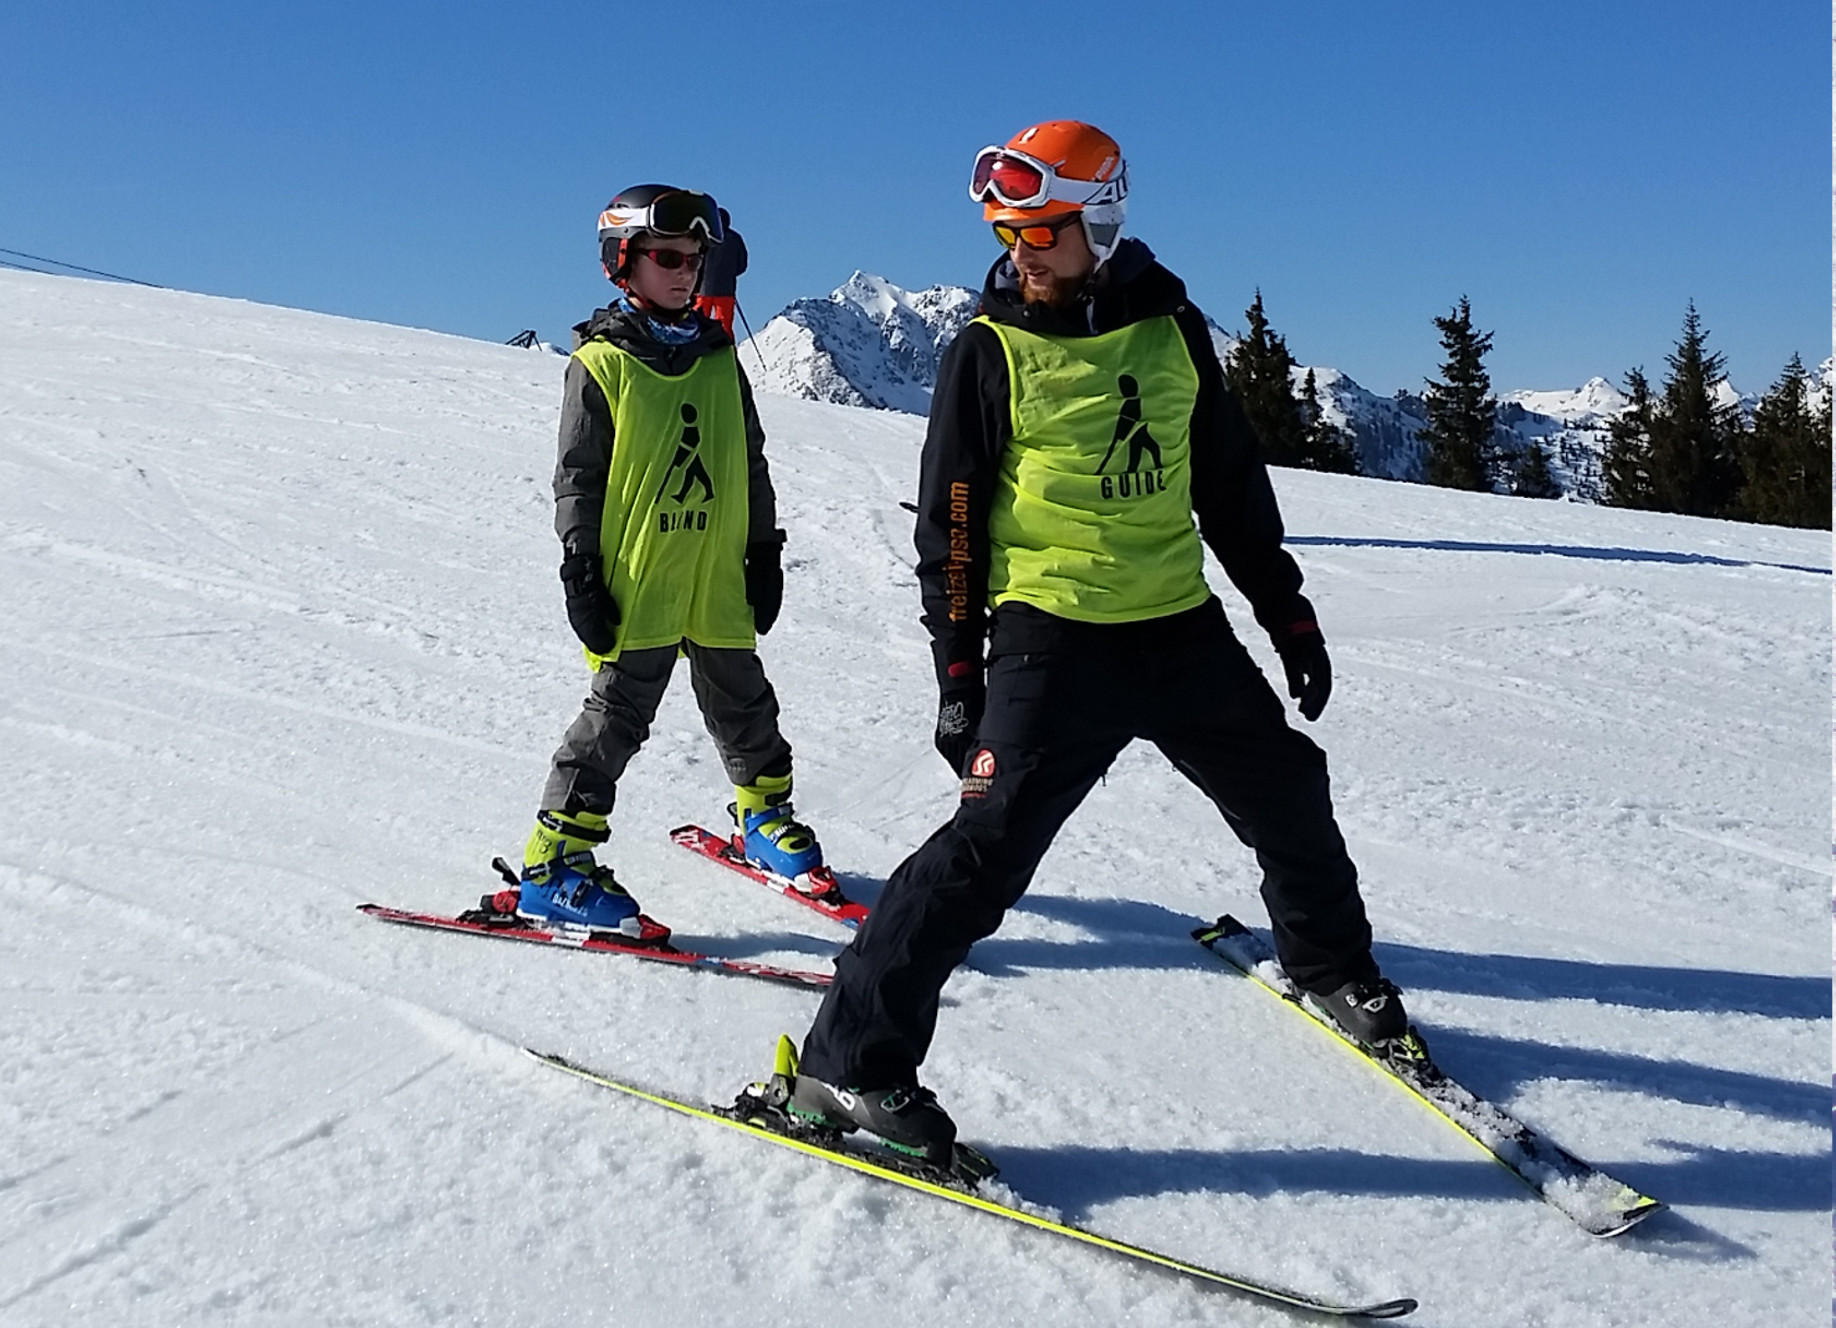 Skiing with visual impairment